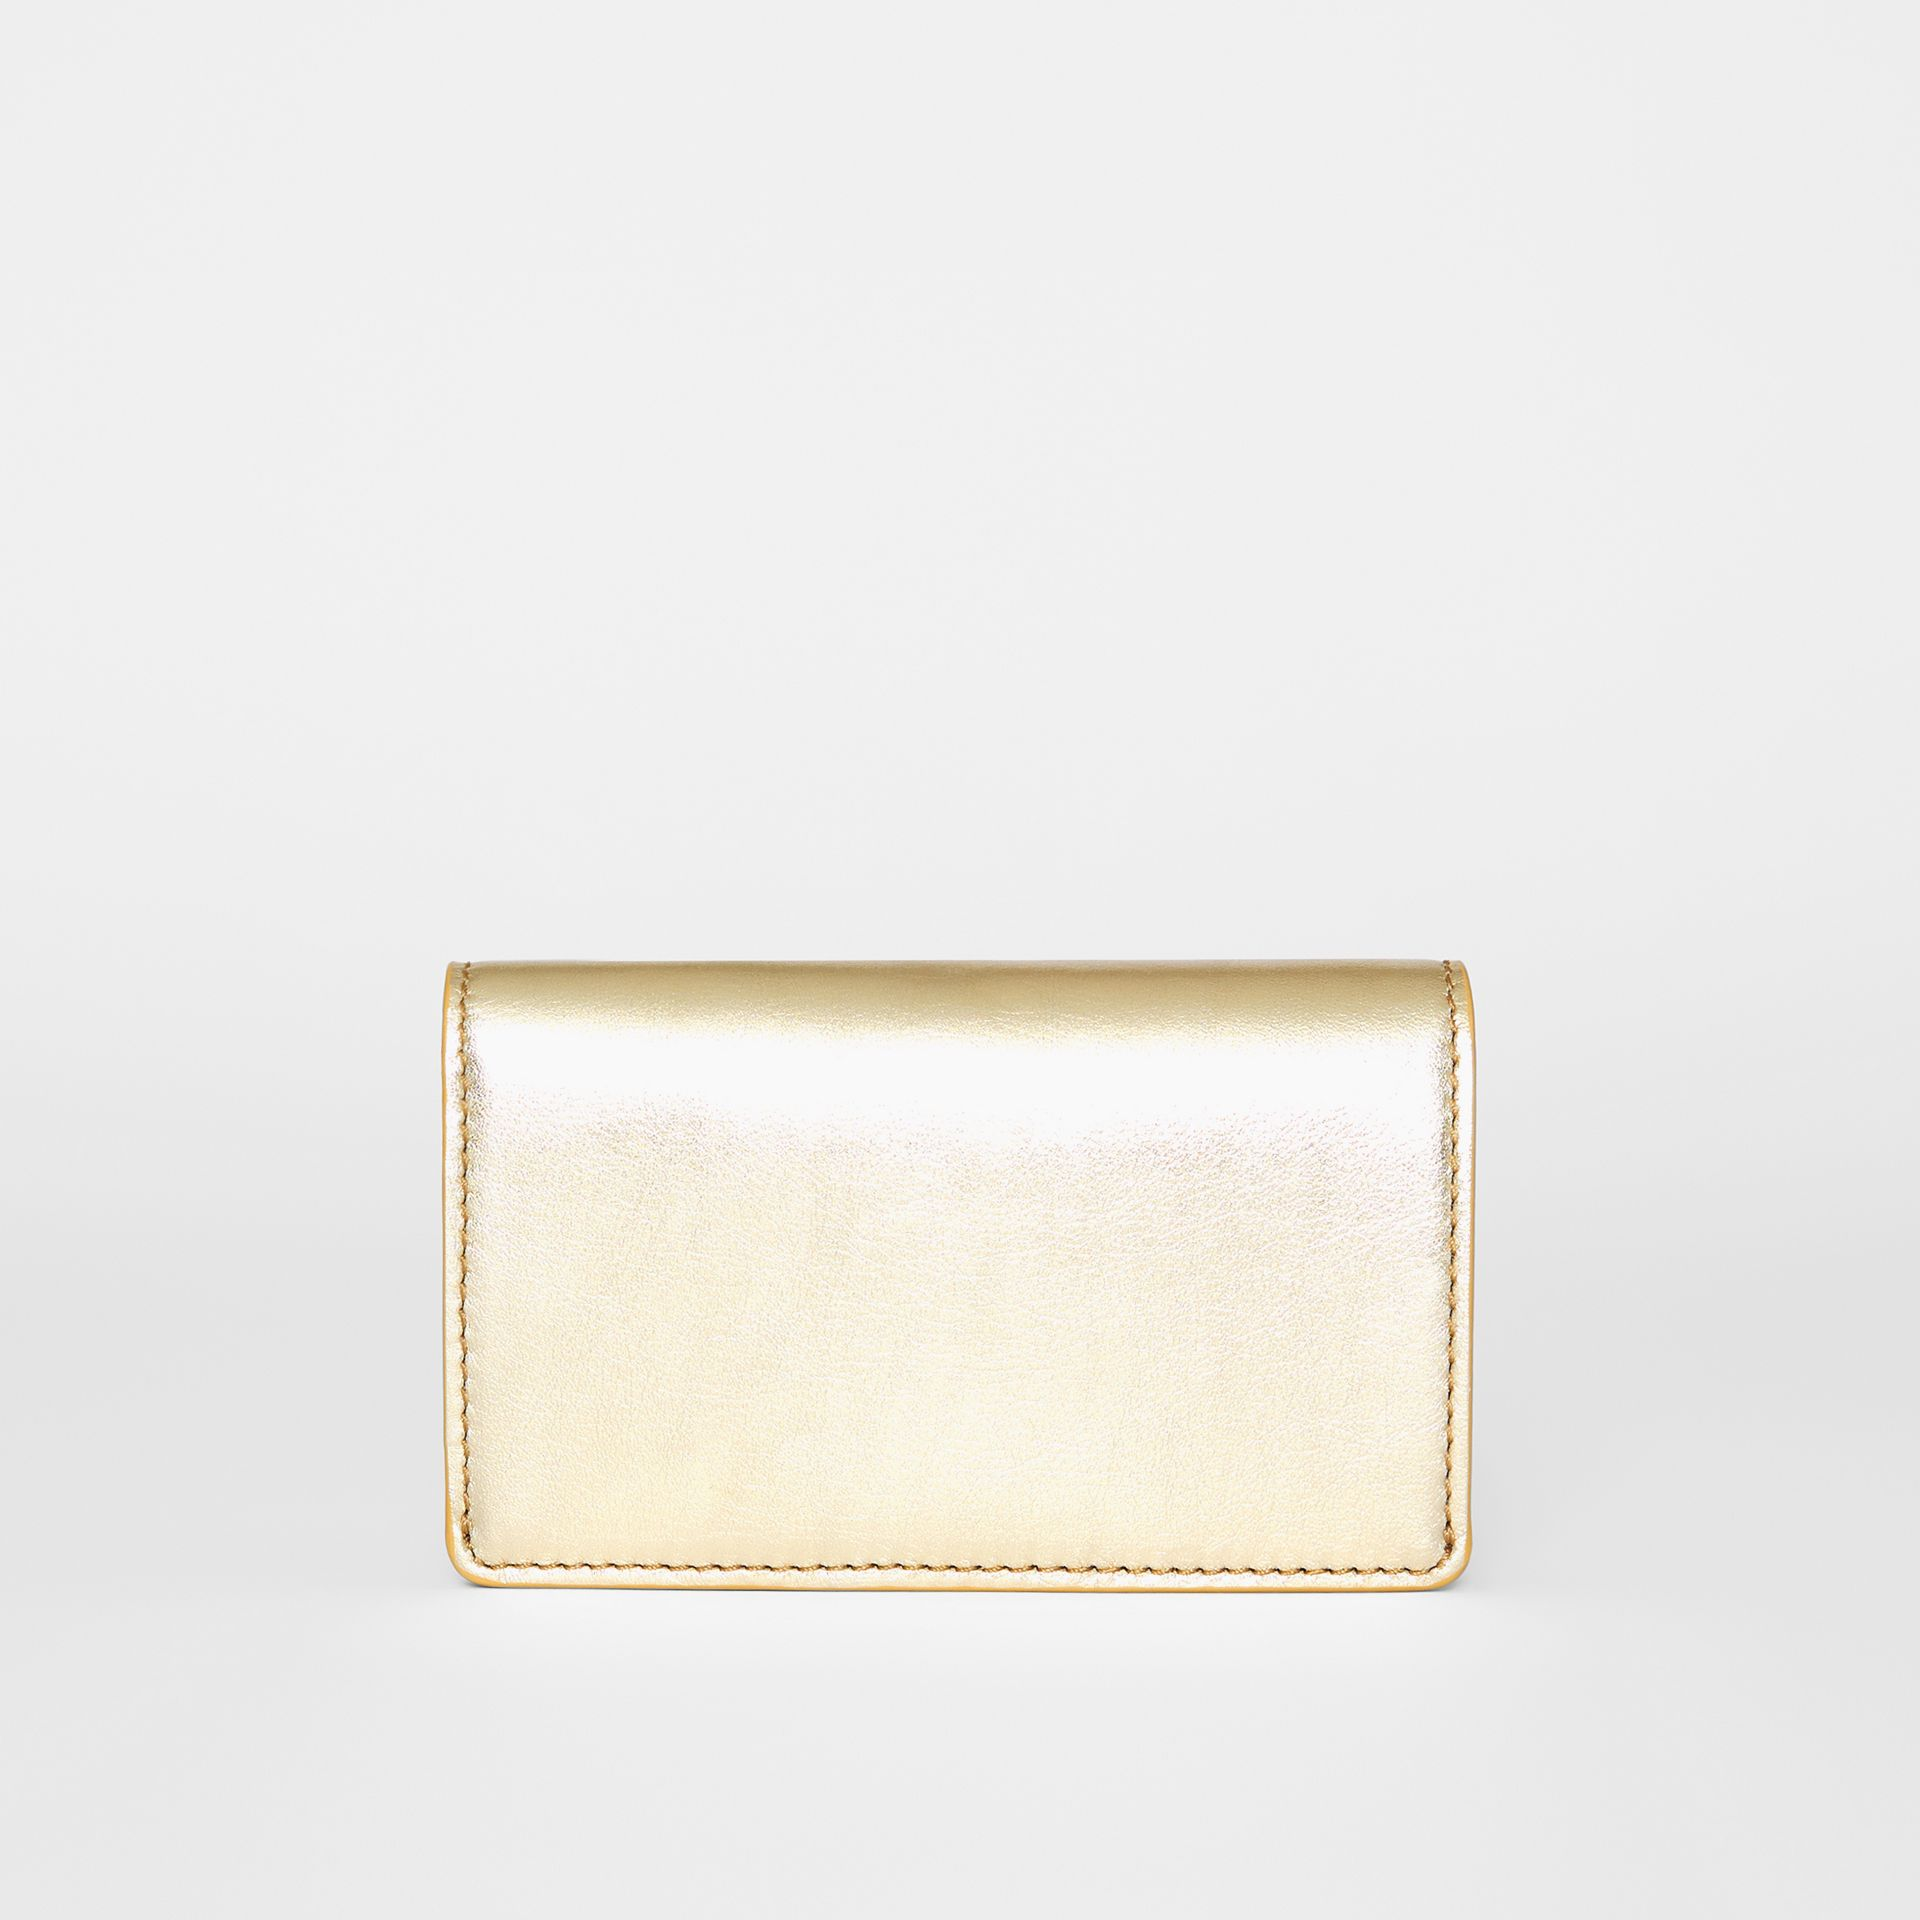 Small Embossed Crest Metallic Leather Wallet in Gold - Women | Burberry Singapore - gallery image 5